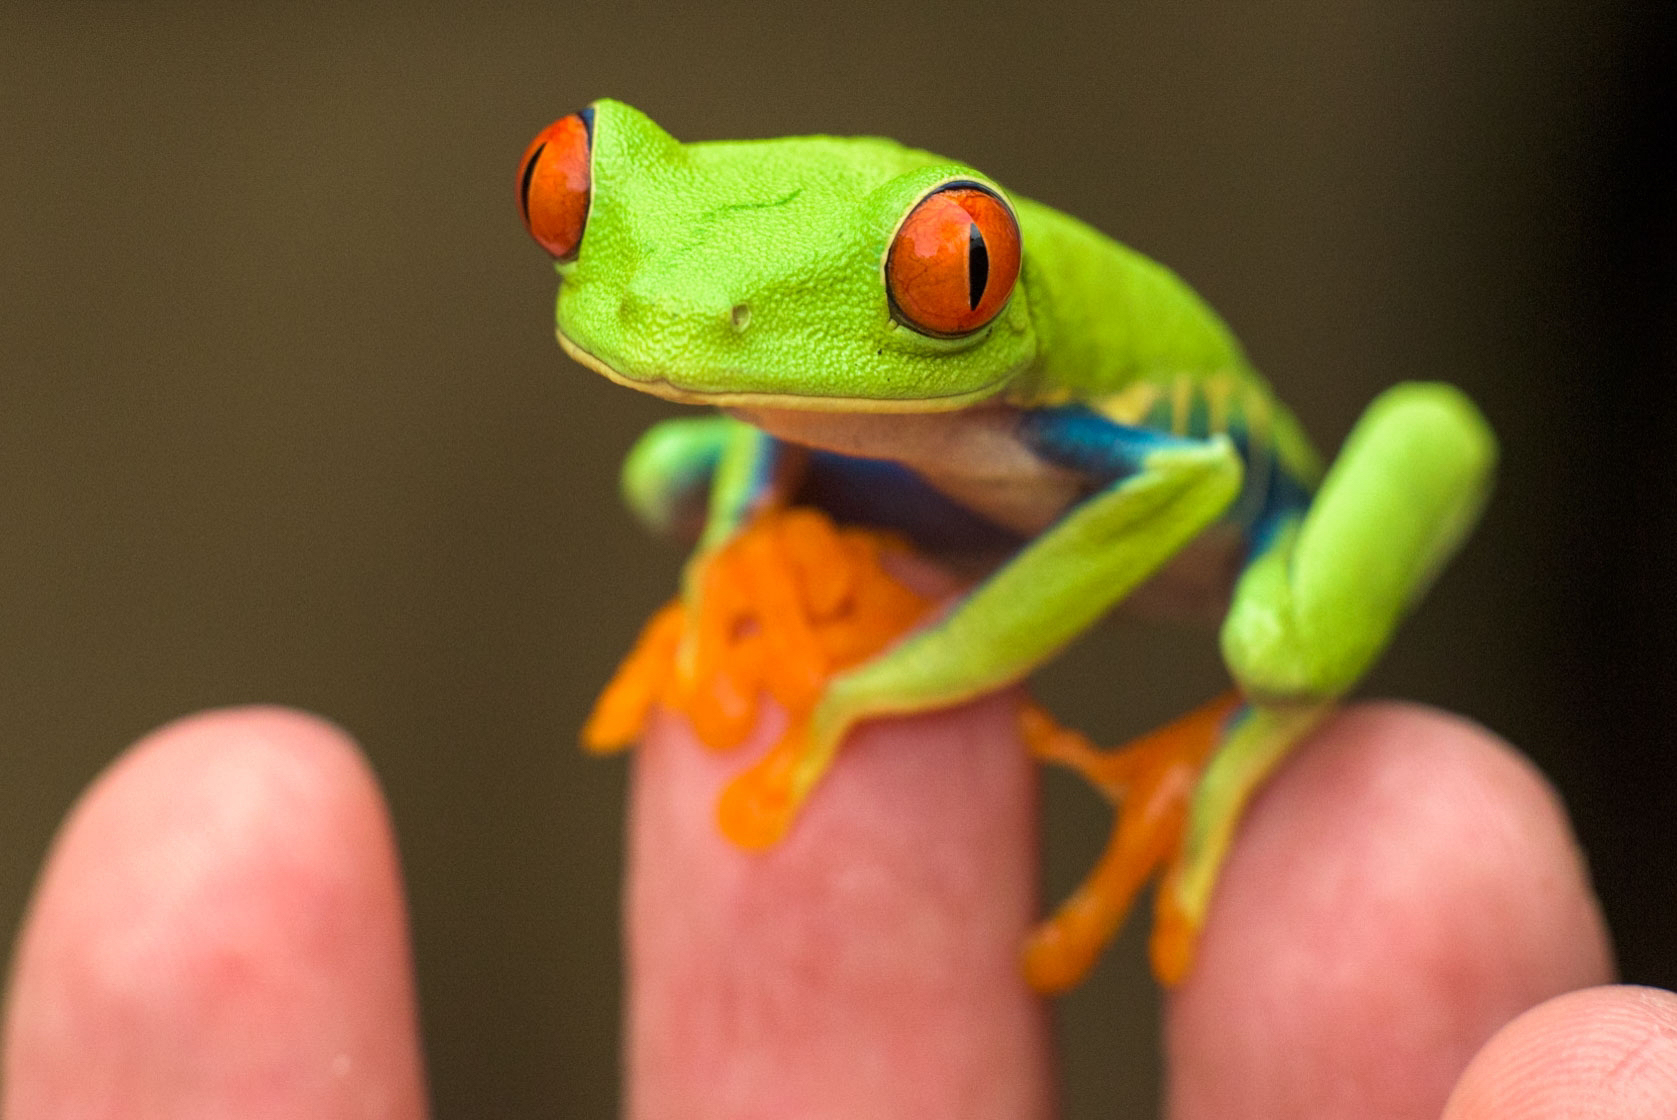 Costa Rica - Red Eyed Tree Frog